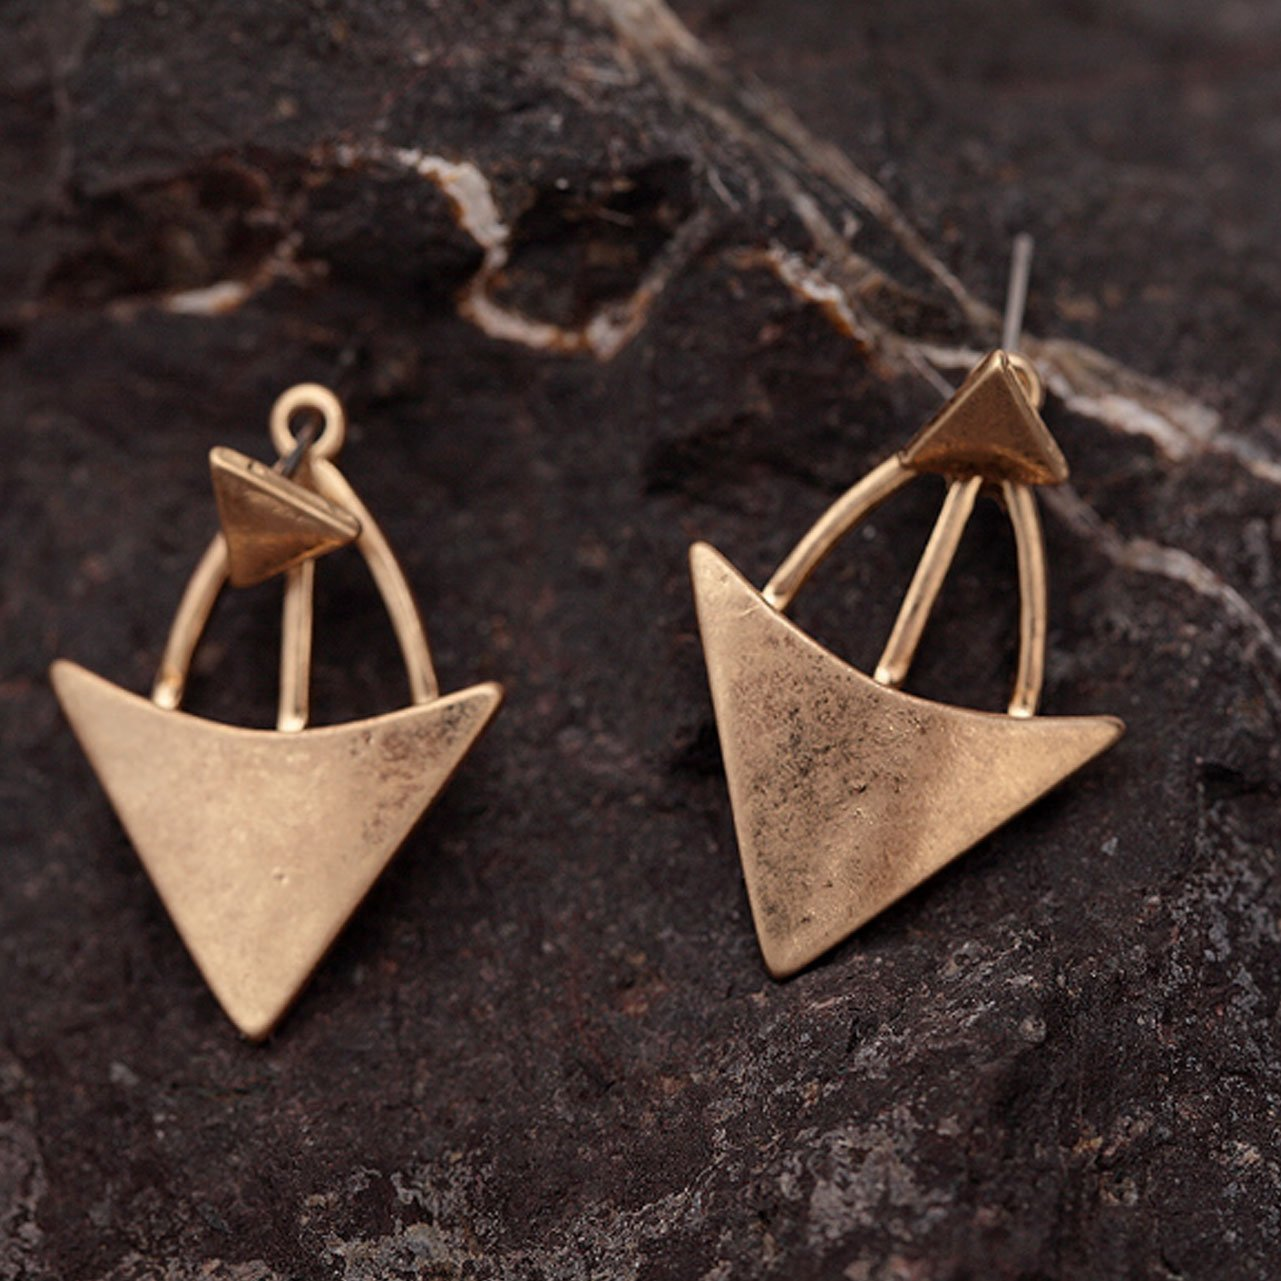 Women Handmade Minimalist Triangle Stud Earrings Gold Plated Alloy Arrow Earrings Jewelry For Party